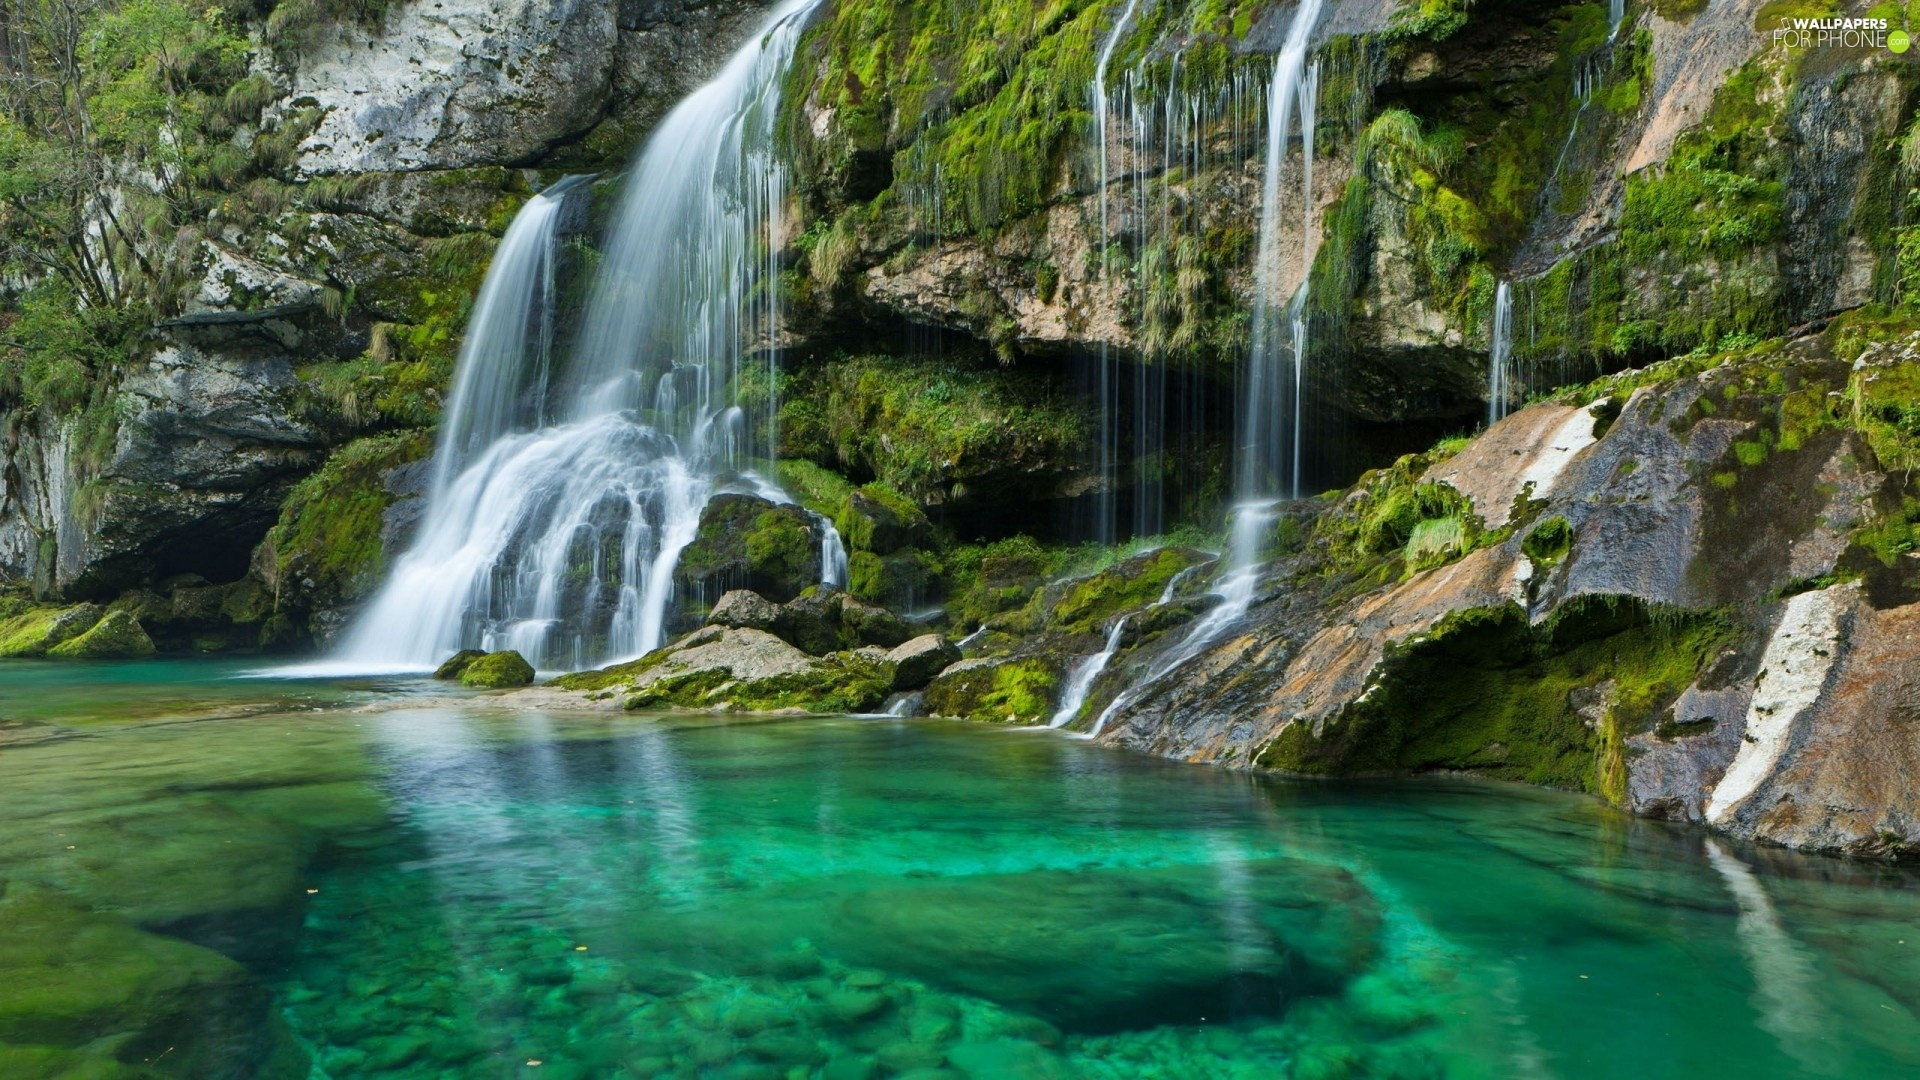 Wallpaper Hd 1920x1080 Fall Waterfall Lake Slovenia Rocks For Phone Wallpapers